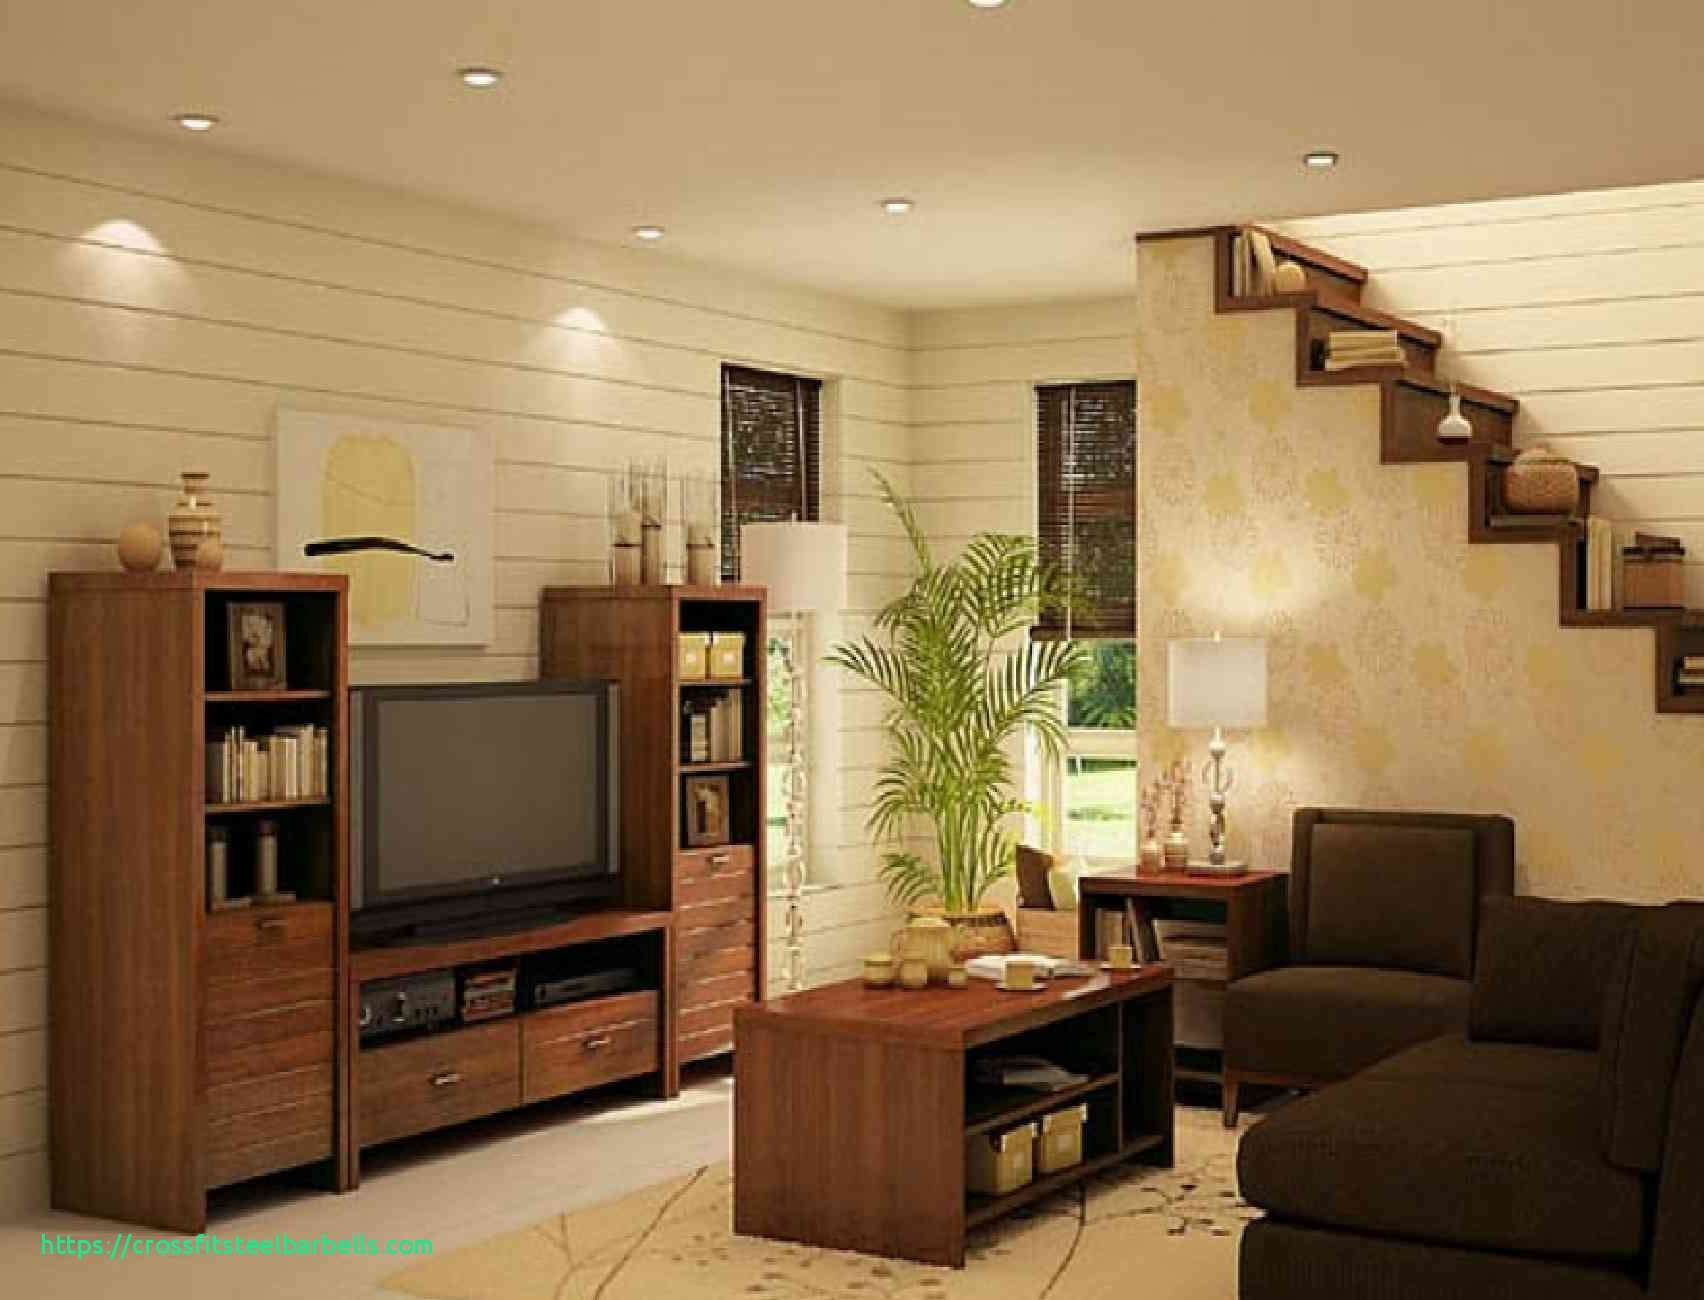 Fresh Interior Design Ideas Indian Style For Small Home Cross Fit ...